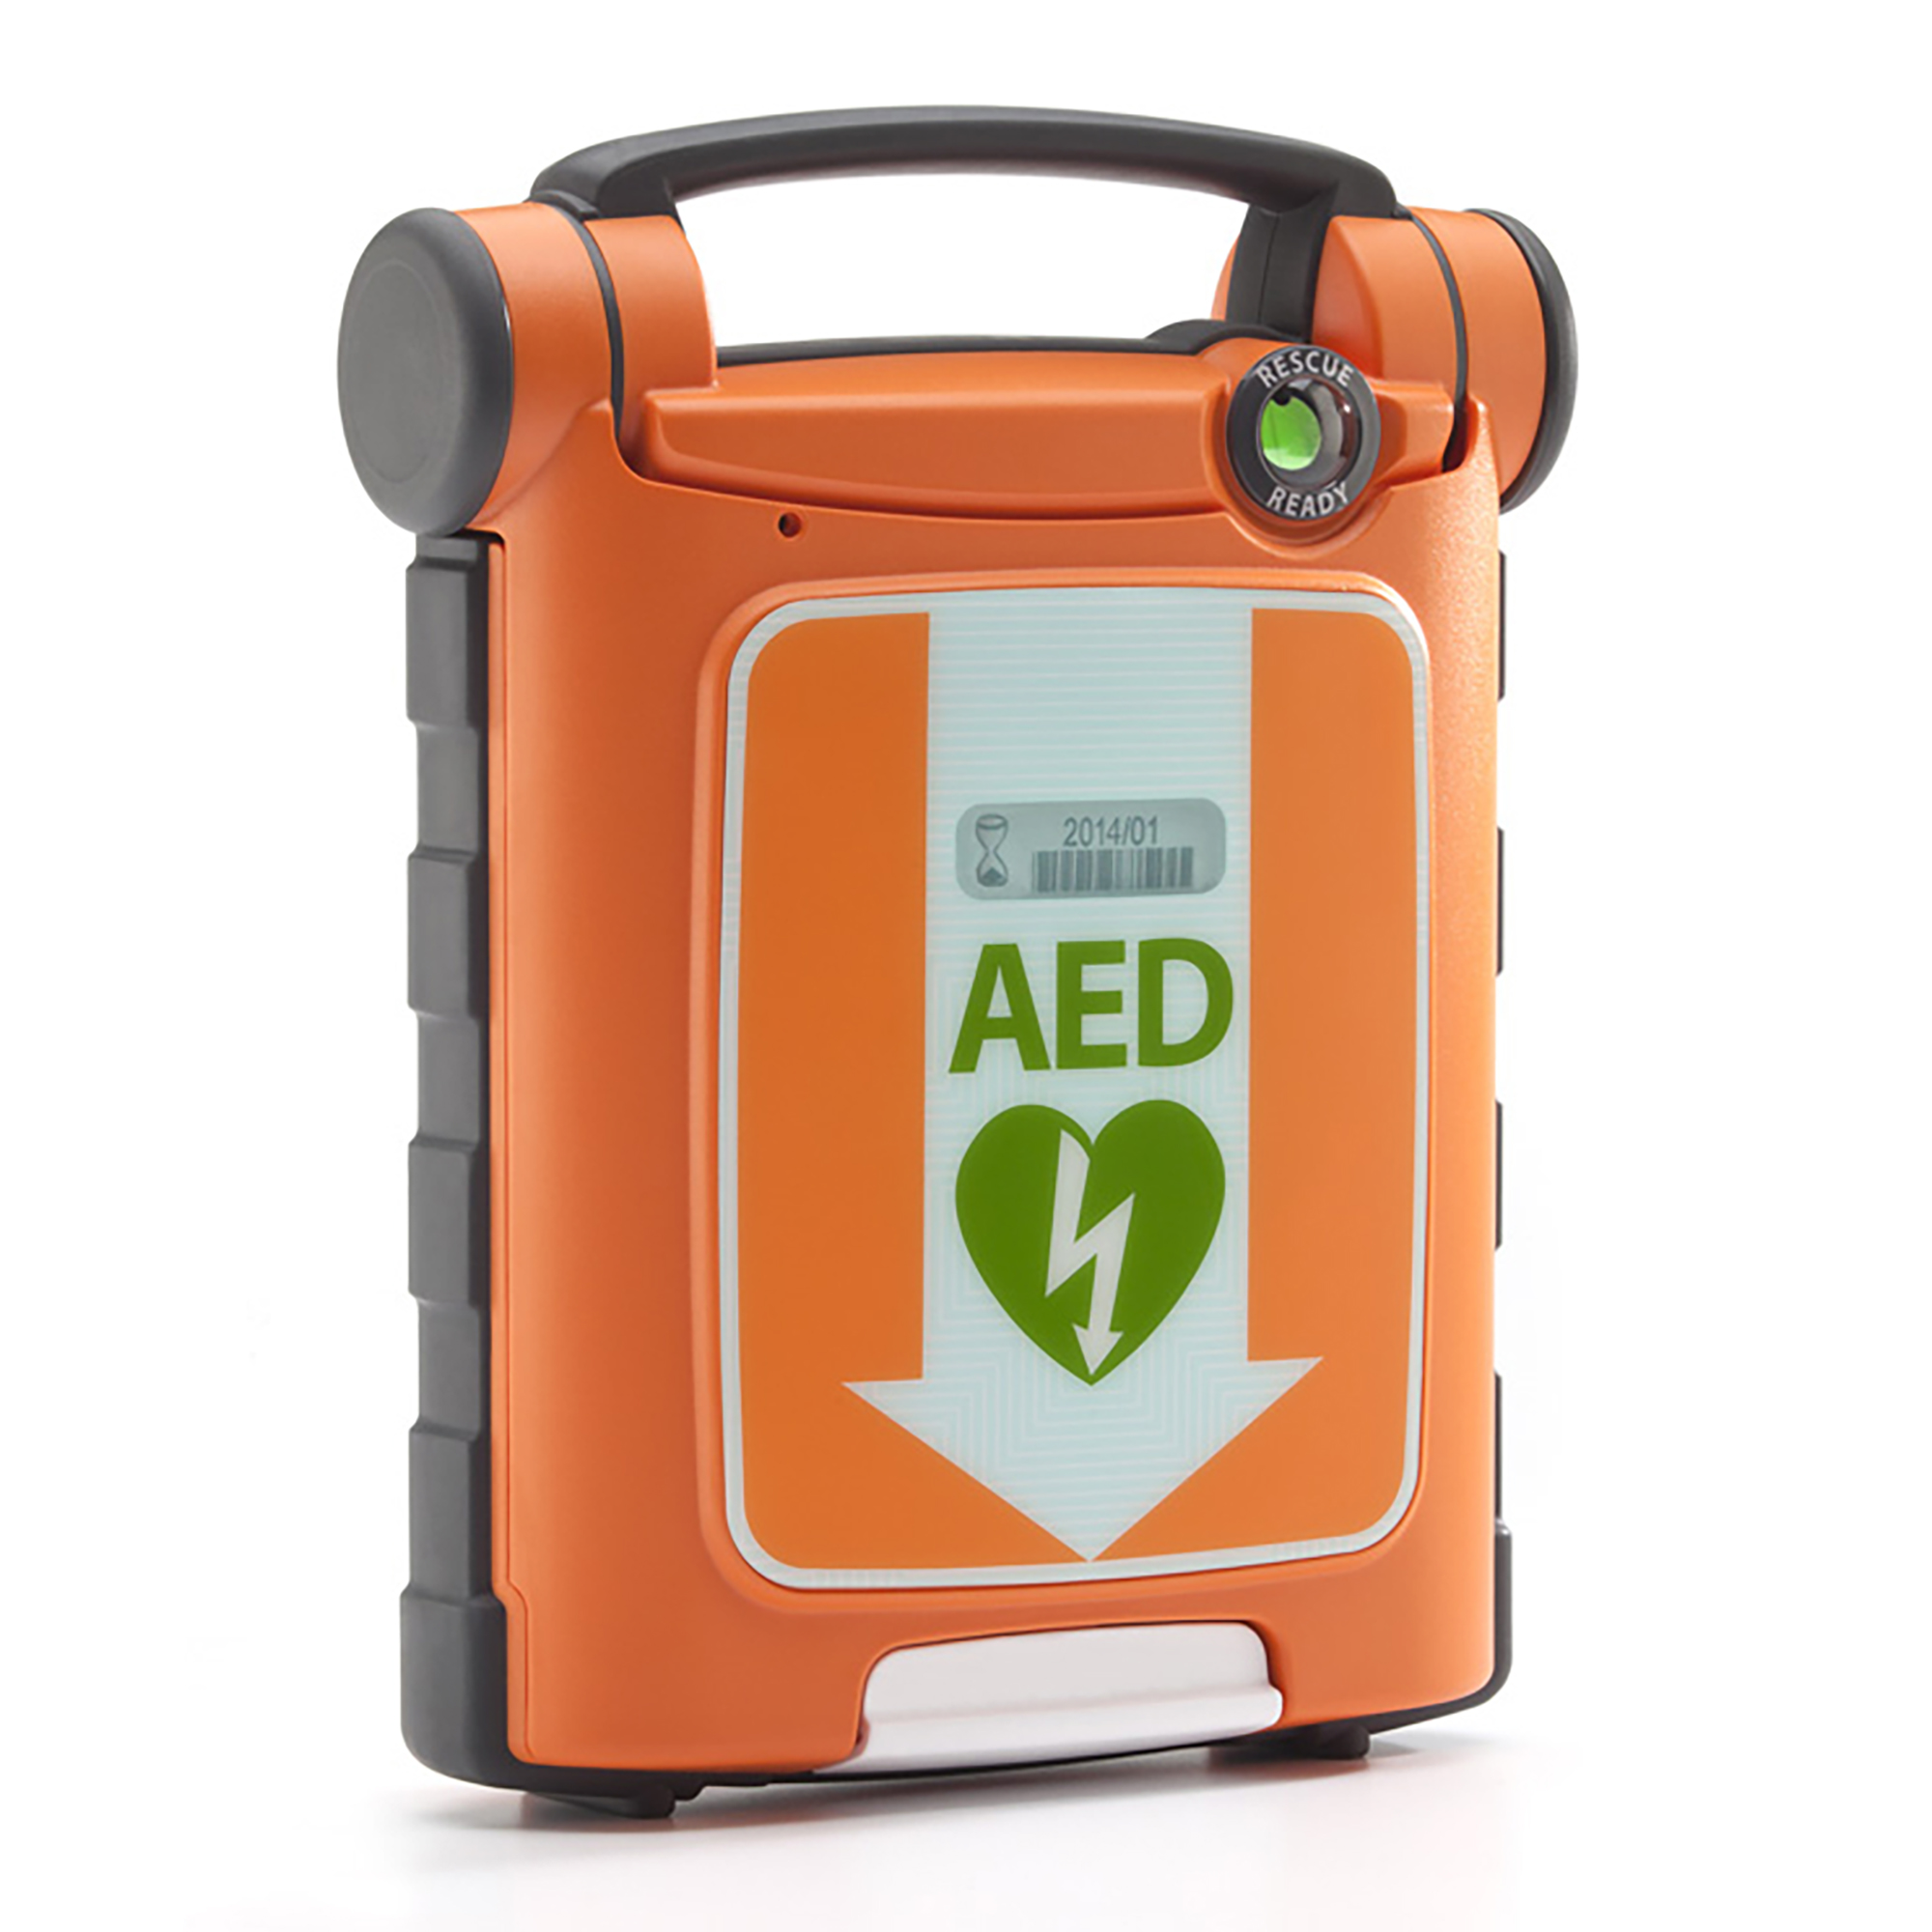 Cardiac Science G5 AED Defibrillator with Wall Bracket [Special Offer] Nov 19-Jan 20*Upto 3 Day Leadtime*